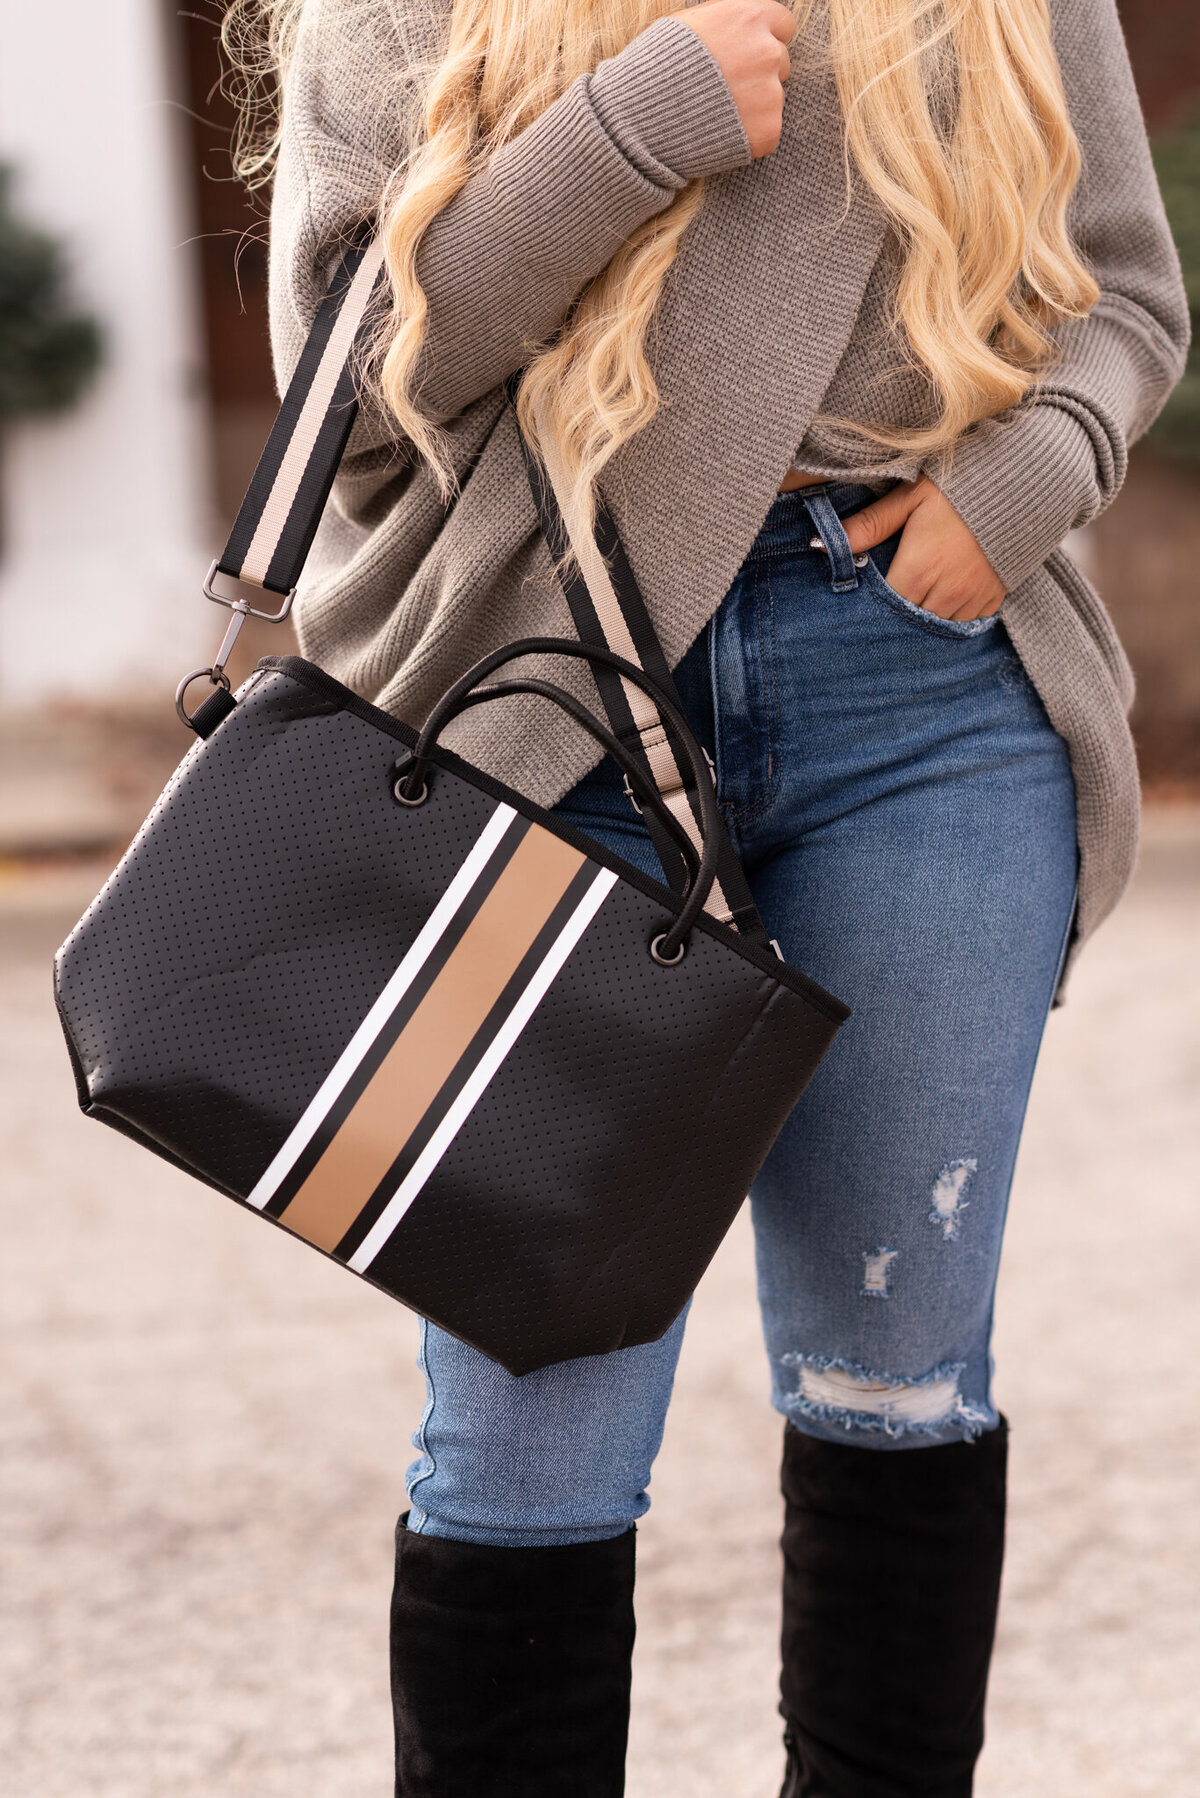 Autumn-Fashion-Boutique-woman-holding-bag-boutique-photographer-iowa-262